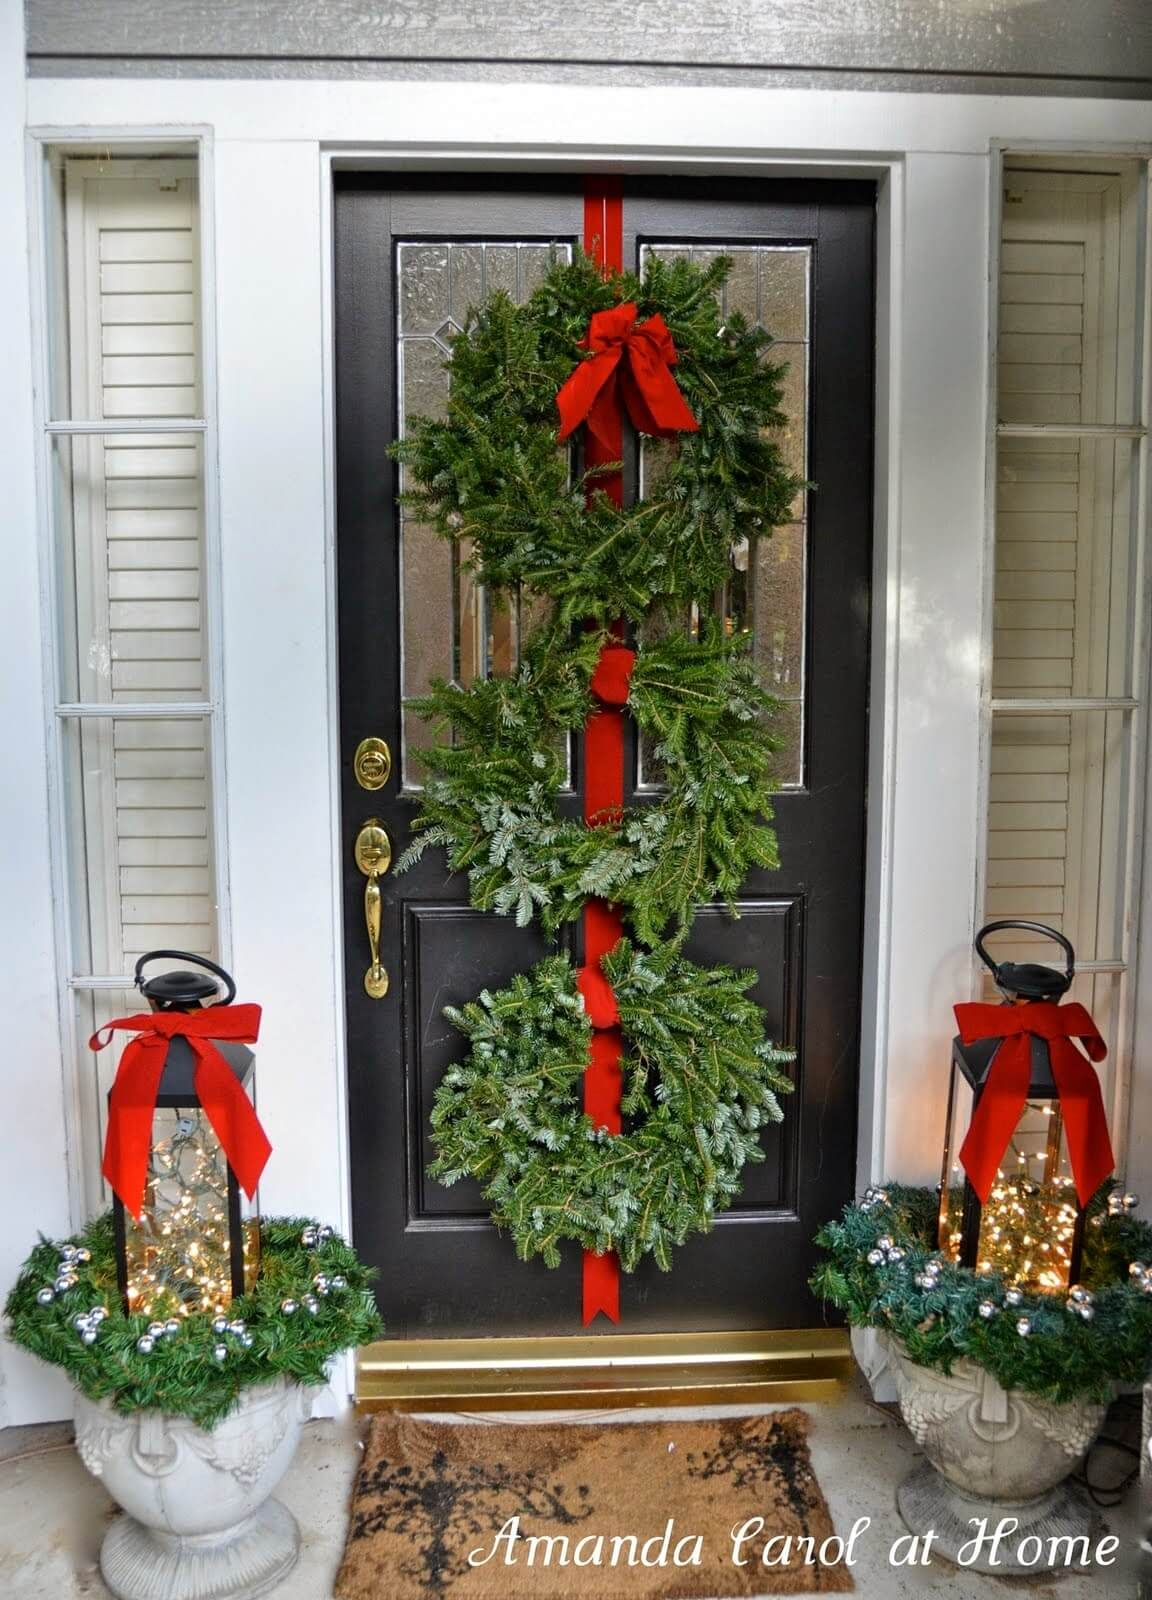 35 Festive Outdoor Holiday Planter Ideas To Decorate Your Front Porch For Christmas Front Door Christmas Decorations Front Porch Christmas Decor Christmas Porch Decor